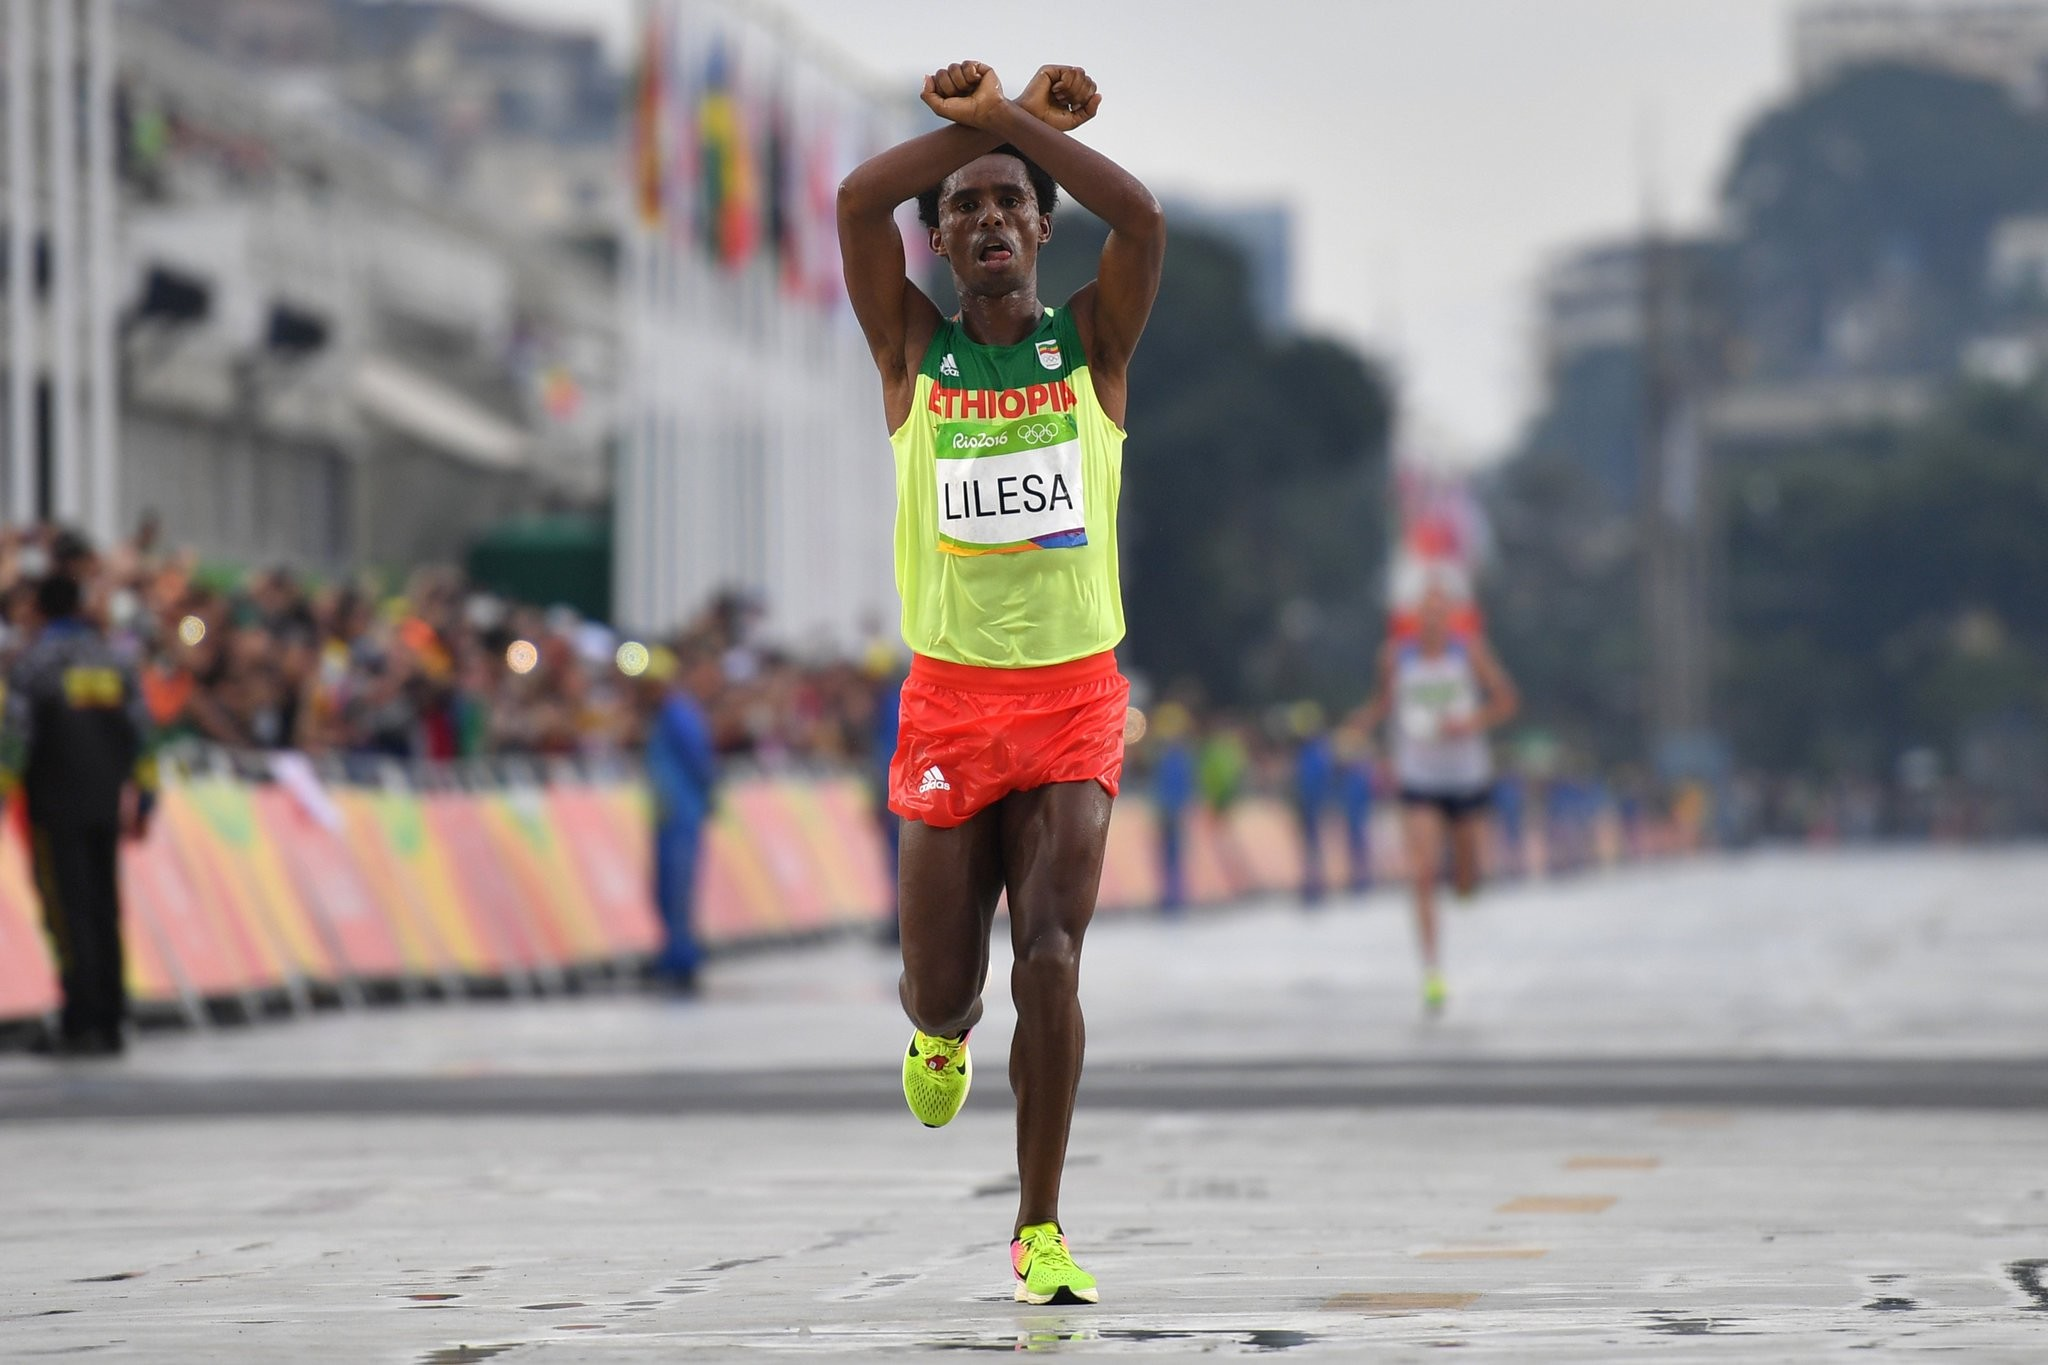 Lilesa, descends on Houston Half Marathon